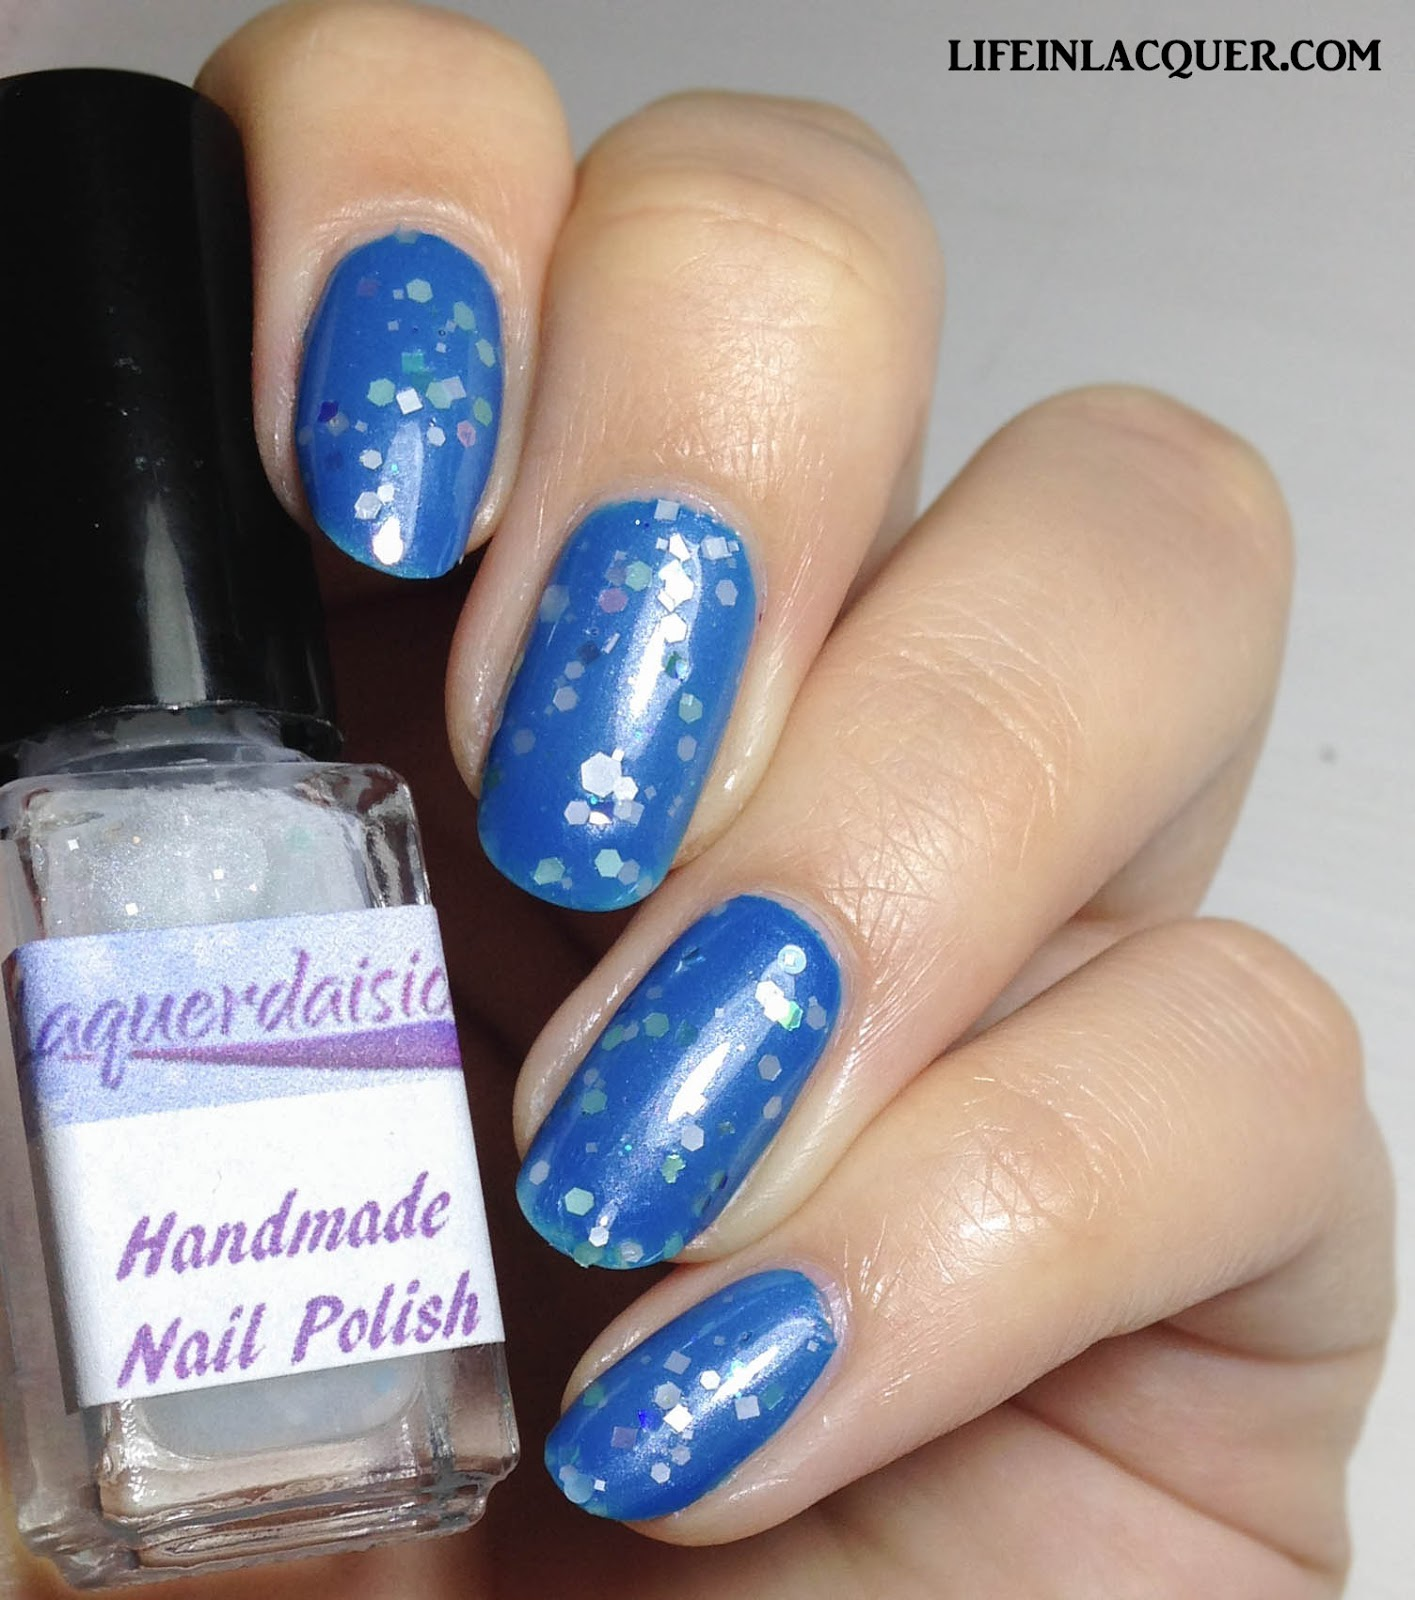 Laquerdaisical Frosted Fancy Review and Swatches indie